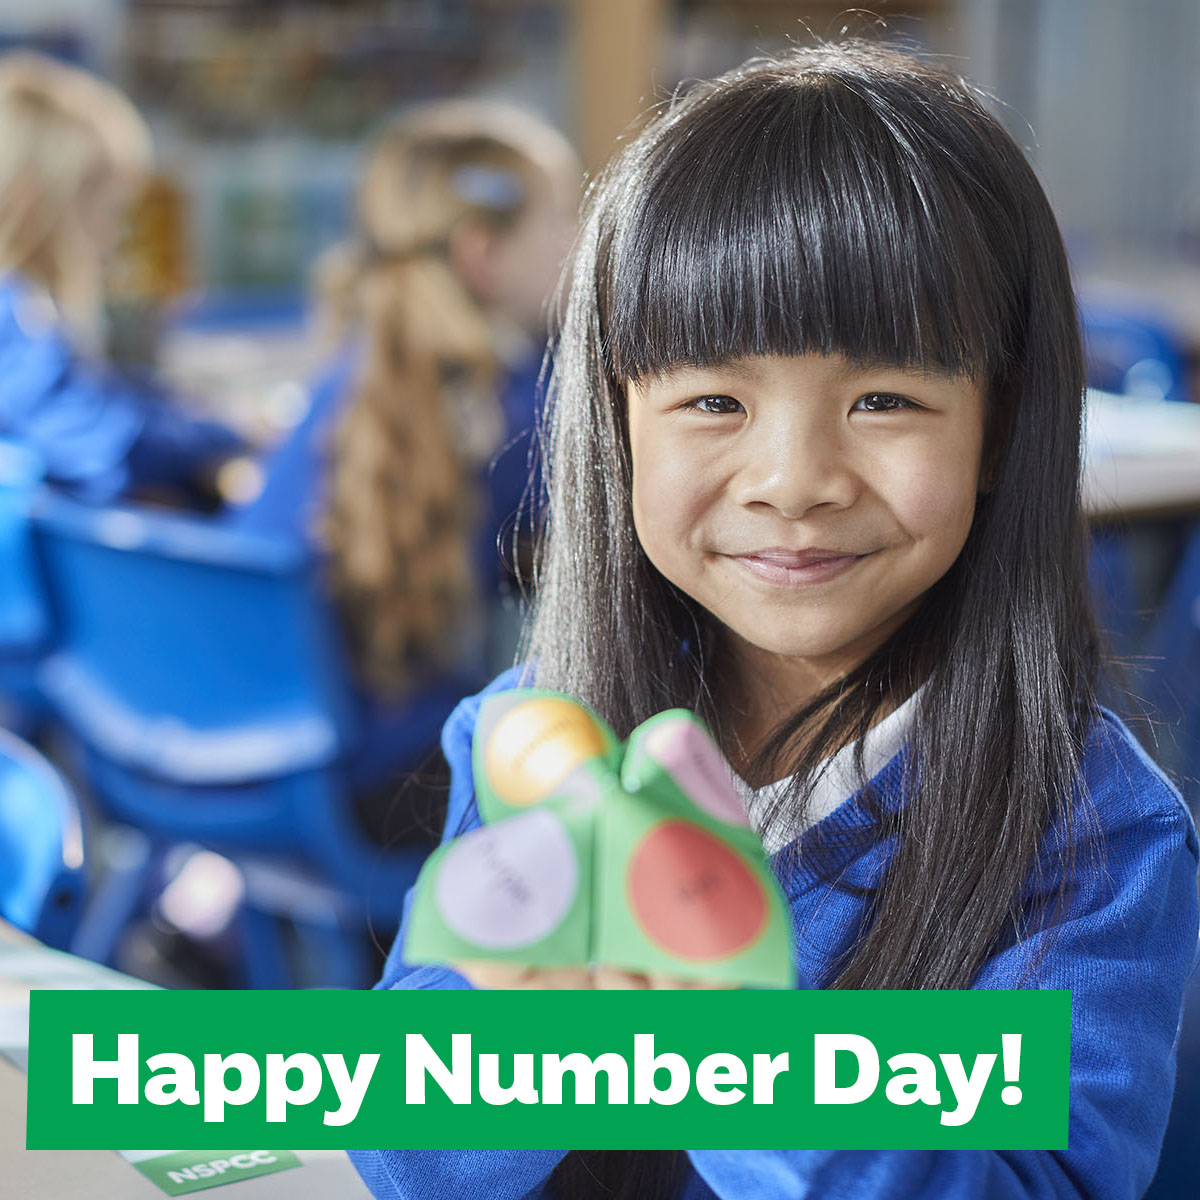 RT @NSPCC Happy Number Day! 💚 Huge thank you to everyone taking part in this fun, maths-inspired fundraising day for the NSPCC. Don't forget to tag us in your photos and share them using #NumberDay  https://t.co/3vpifoaMDw